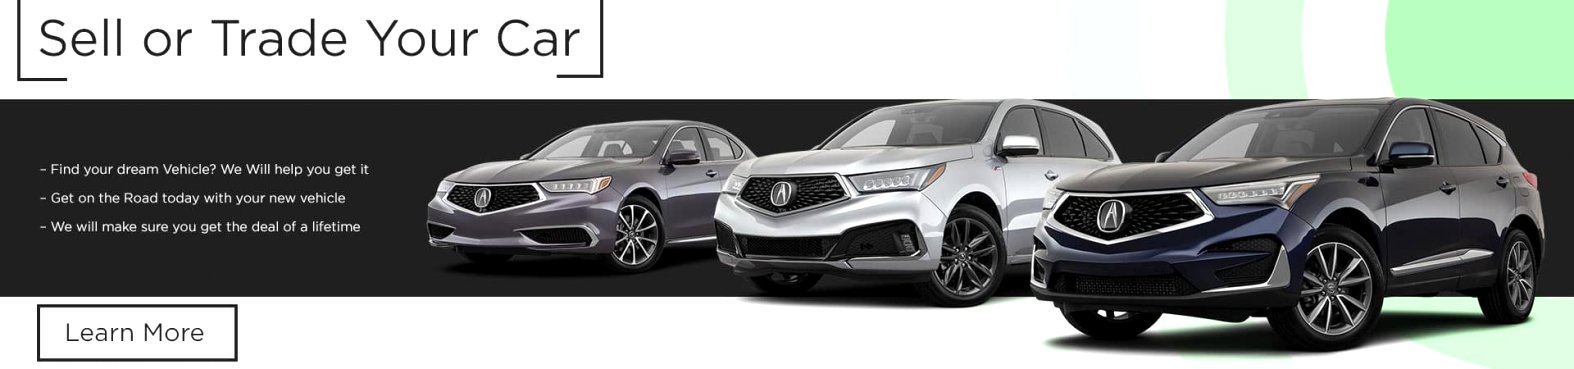 acura black friday deals 2020 Spy Shoot